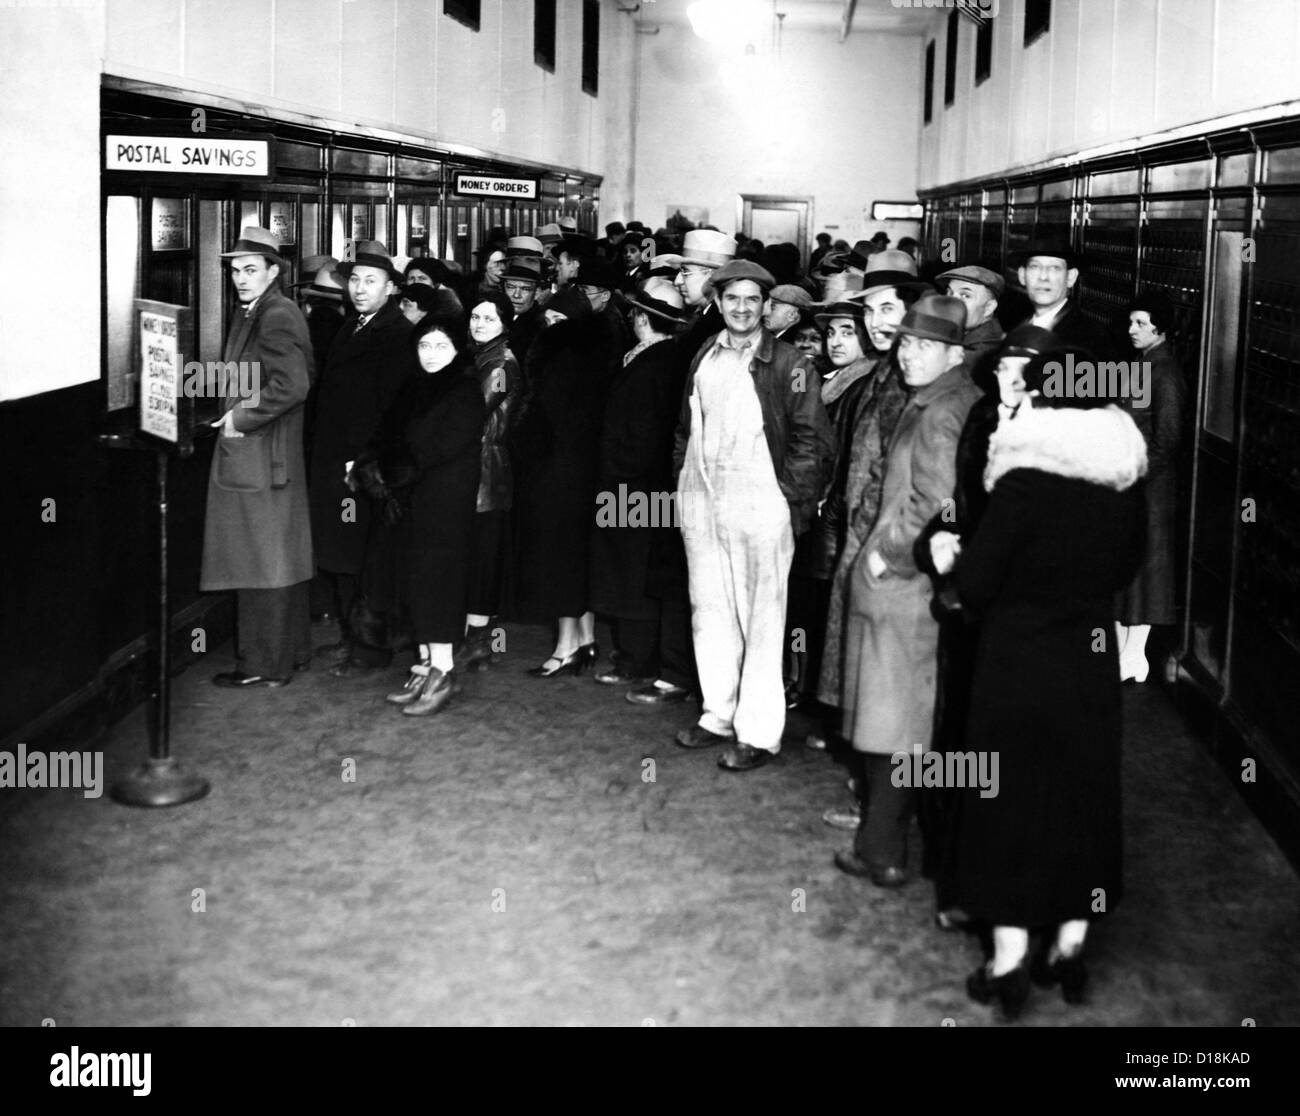 Detroit businessmen seeking cash to carry on business at the Post Office during the bank holiday. Michigan Governor - Stock Image